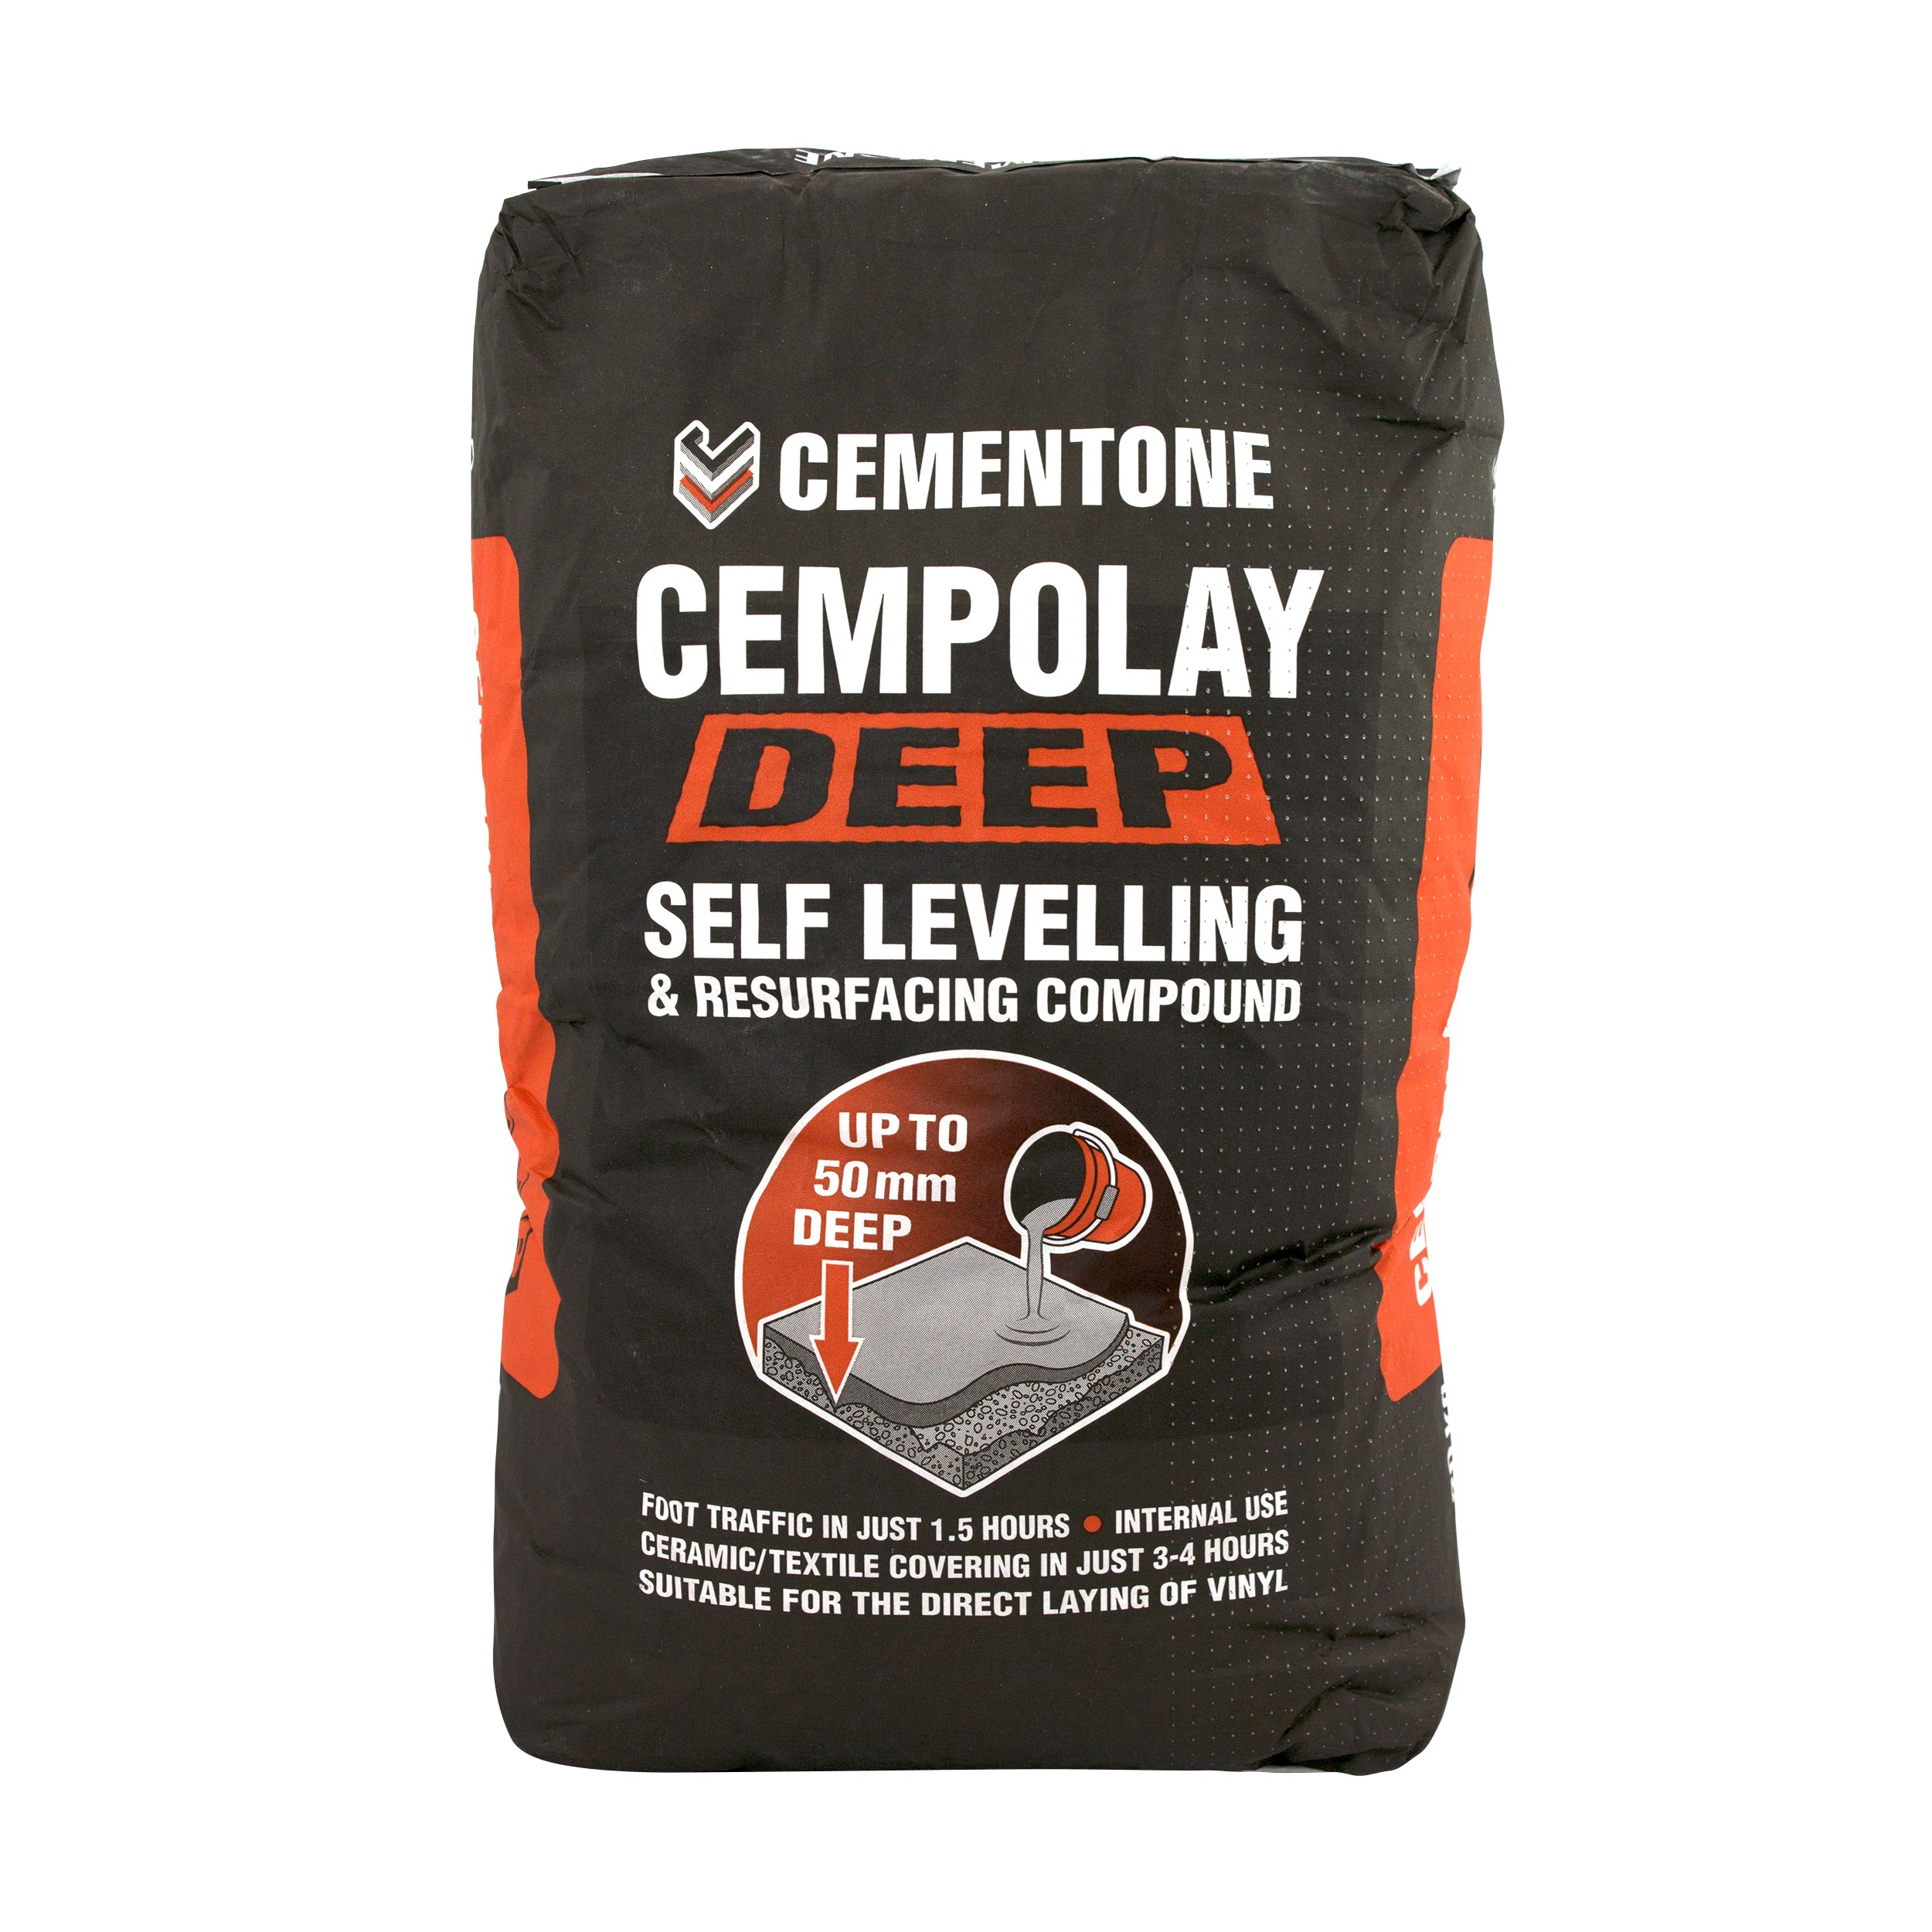 Cementone  Cempolay Deep Self Levelling & Resurfacing Compound - 20kg